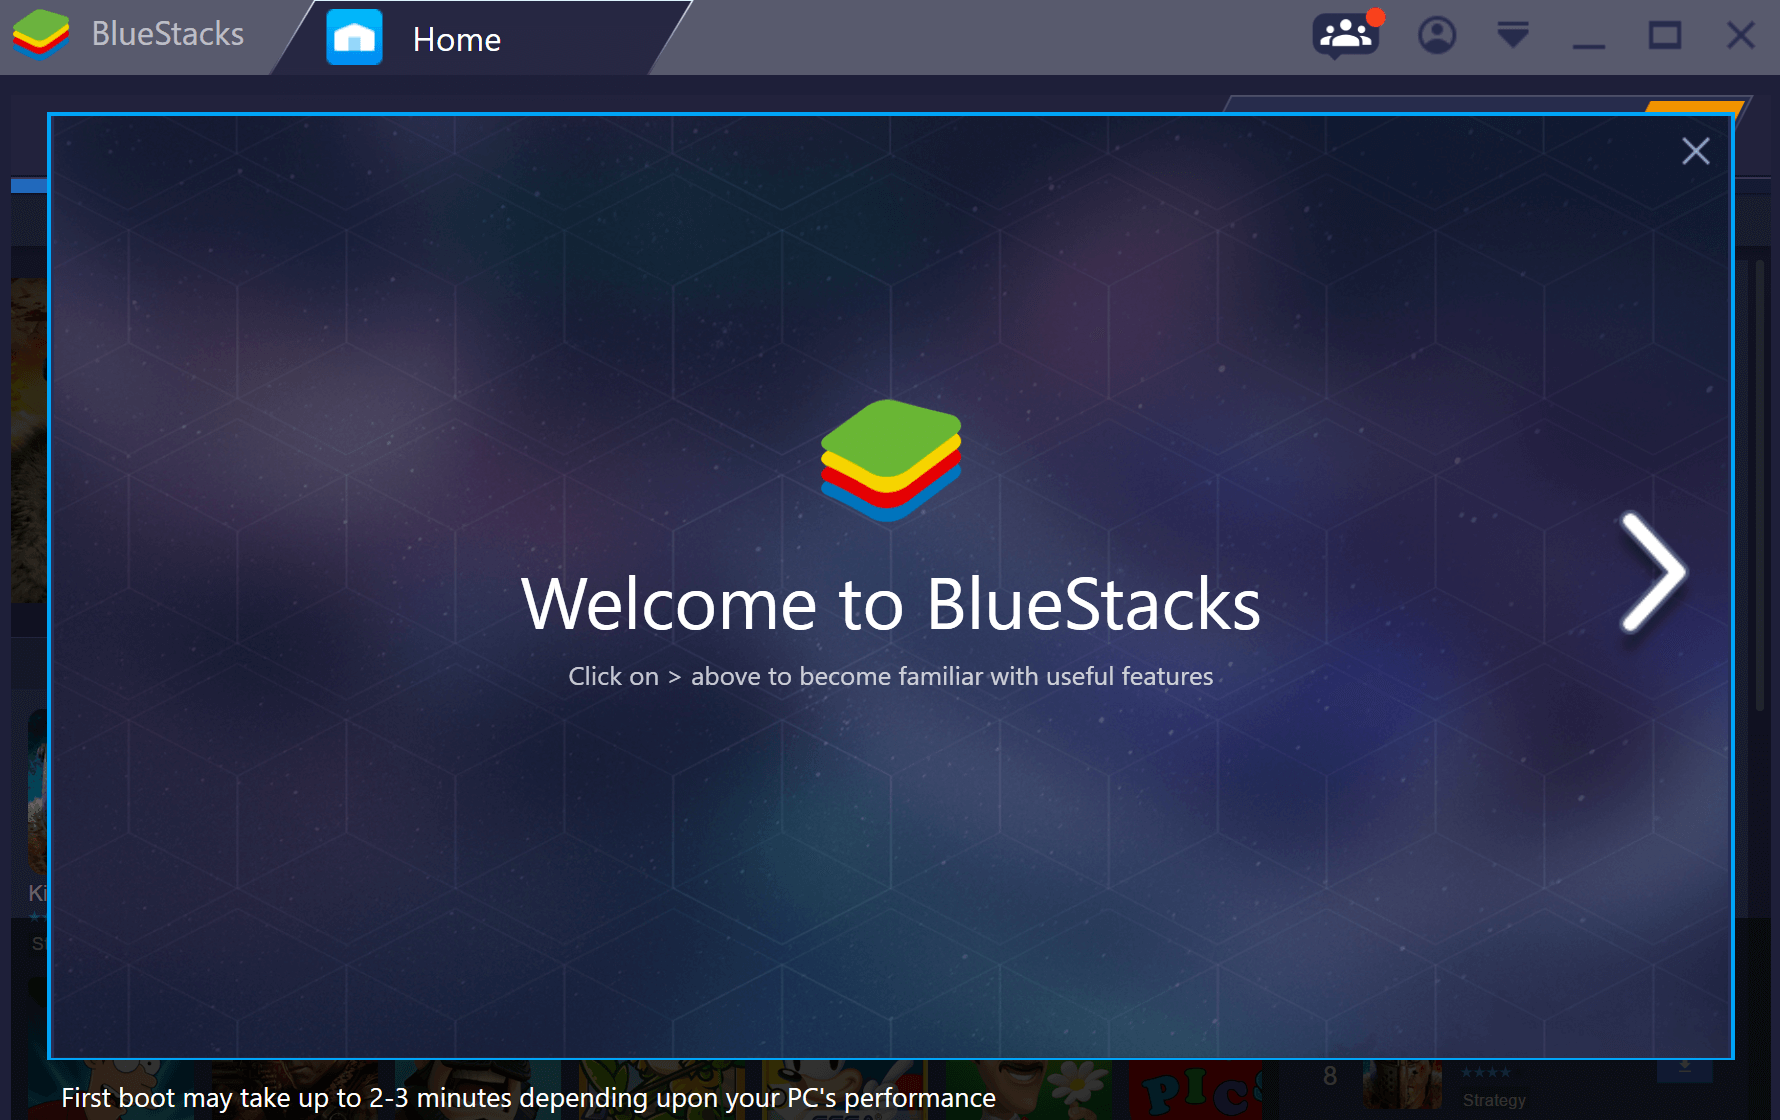 bluestacks 2 offline installer